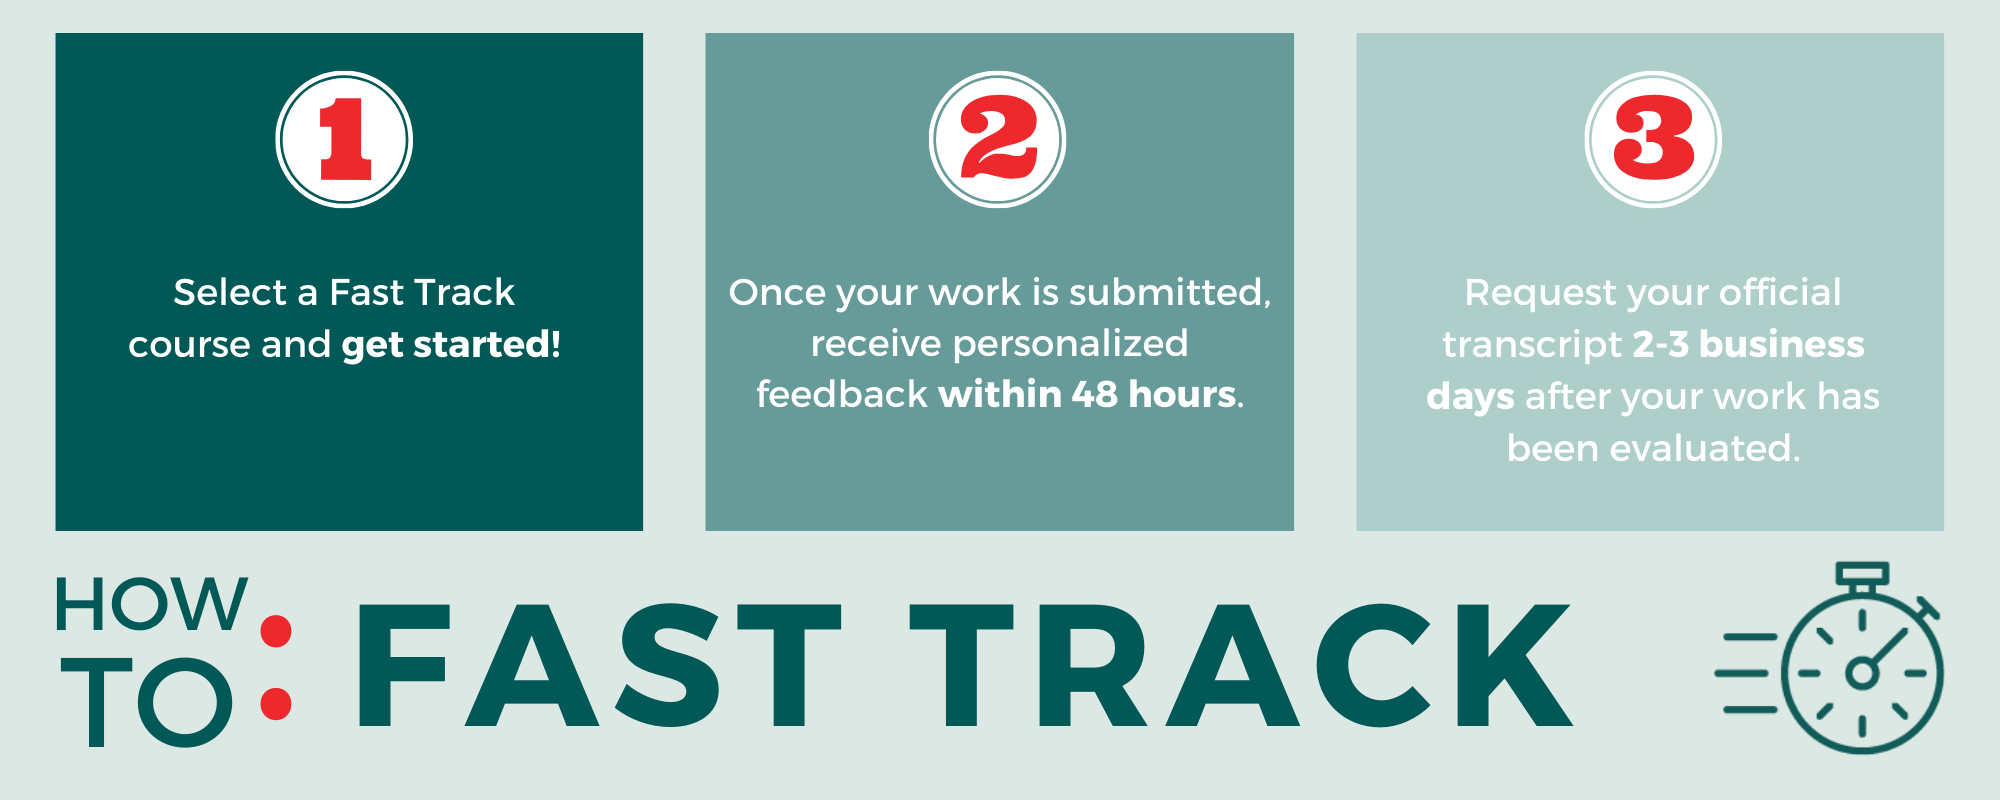 Fast Track Process Graphic (2)